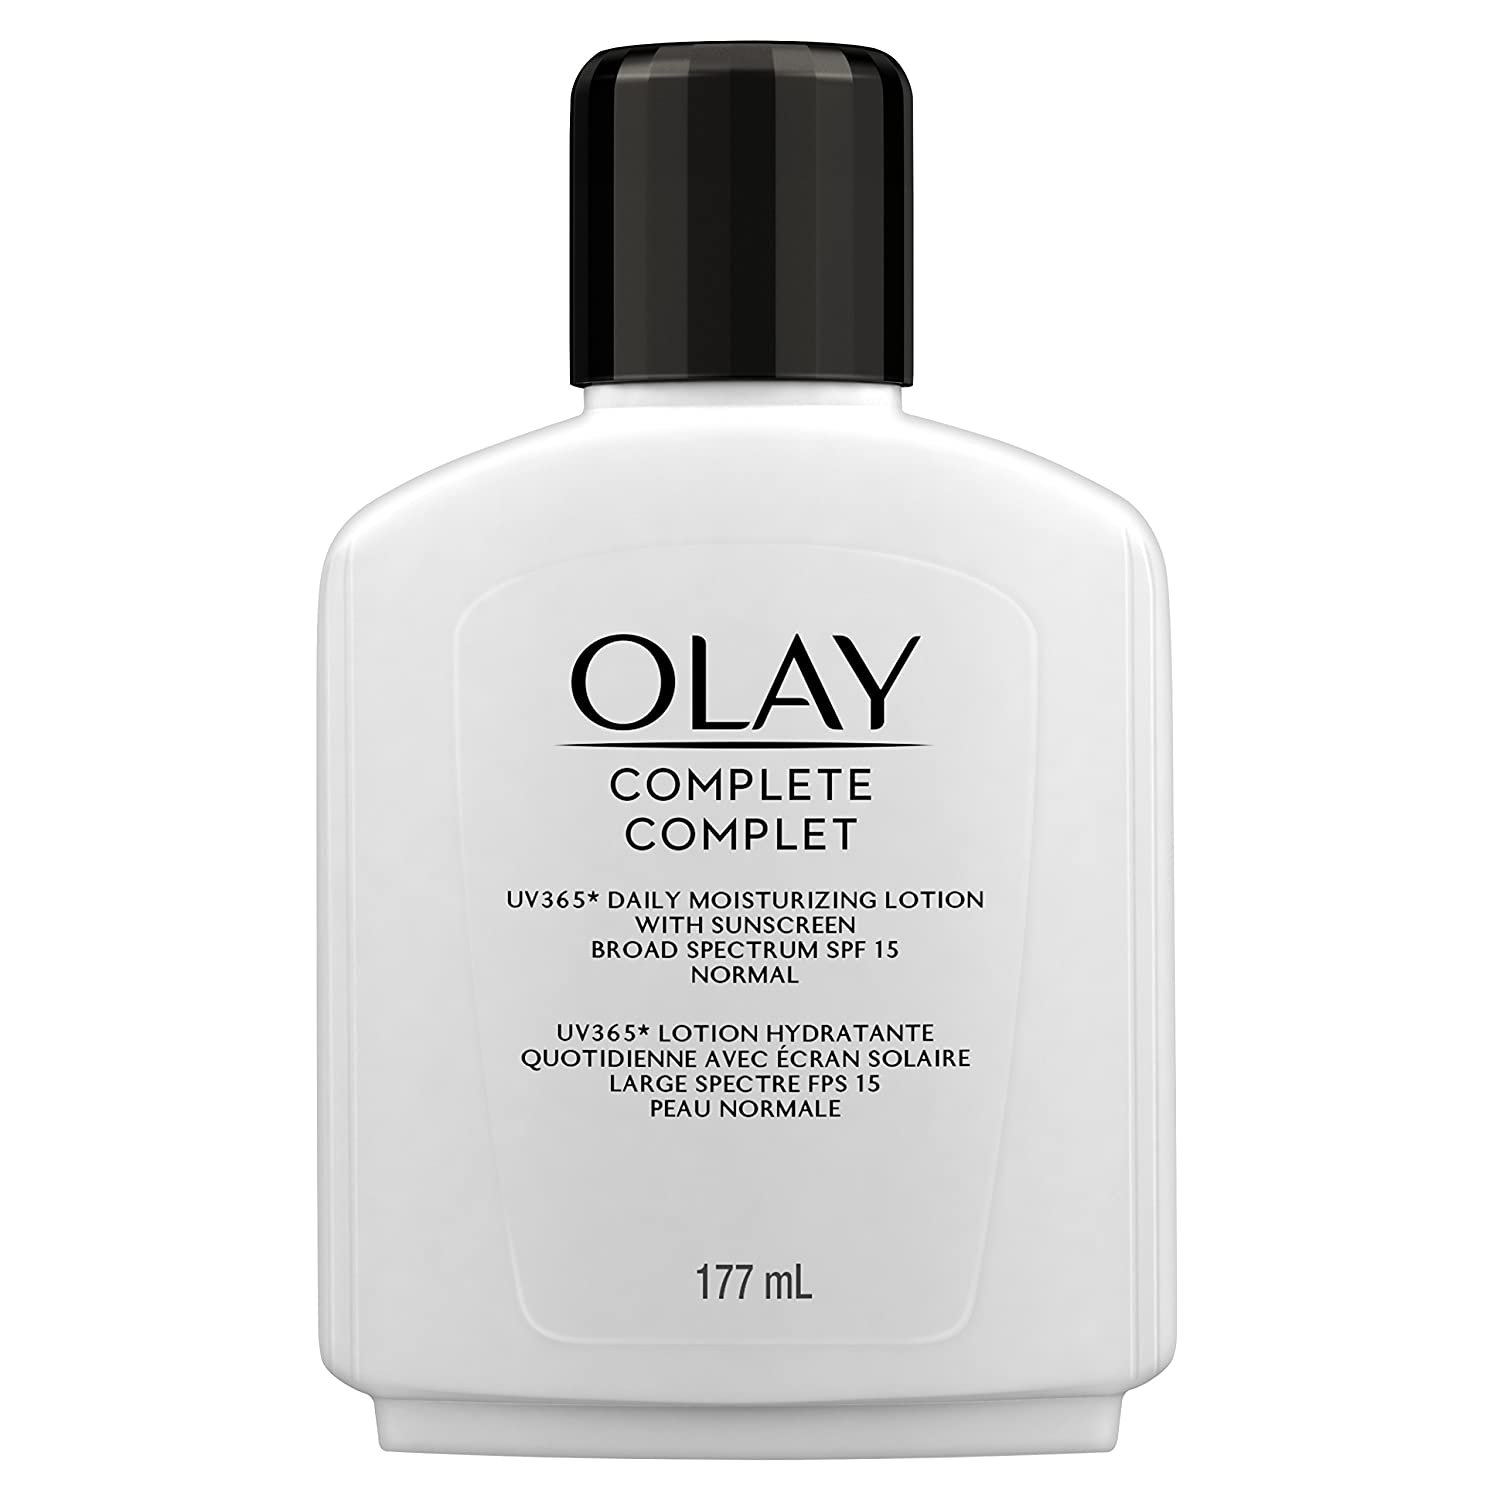 Olay Complete Lotion Moisturizer with SPF 15 Normal, 177 mL, Packaging may vary